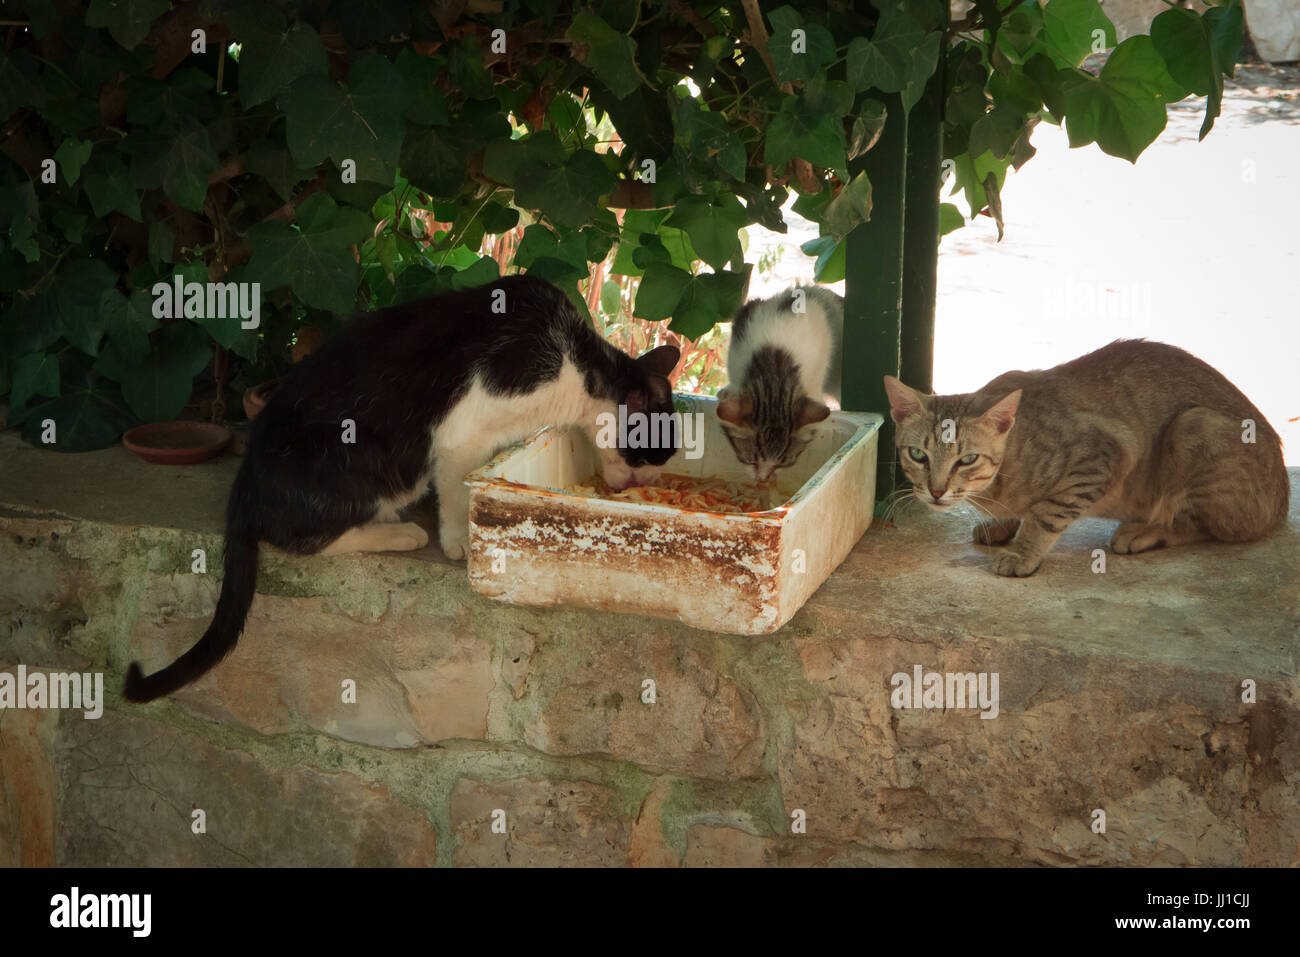 cats eating in the shade in the garden in summer. - Stock Image